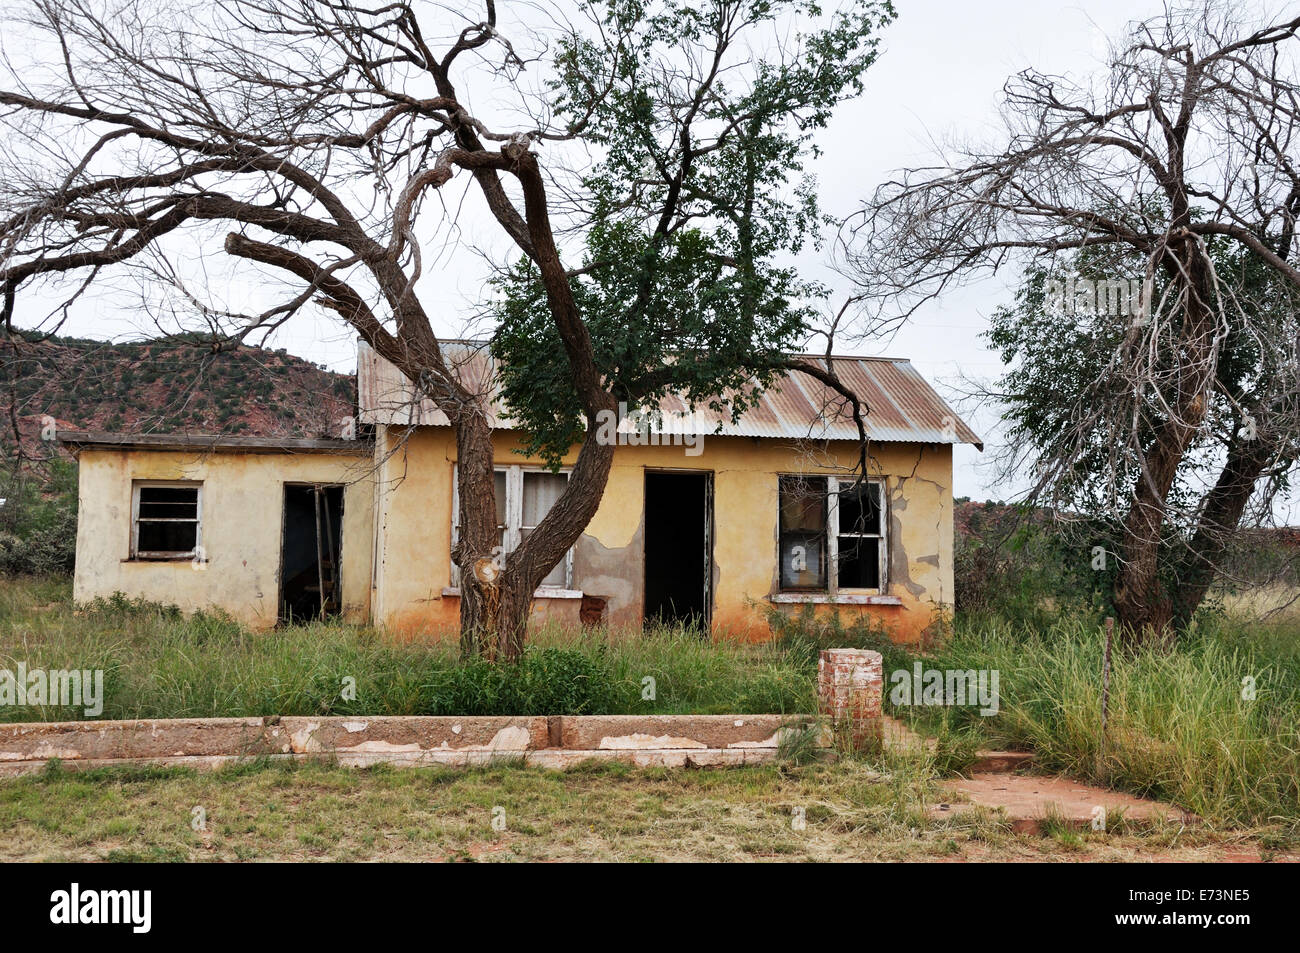 Abandoned and run-down house - Stock Image